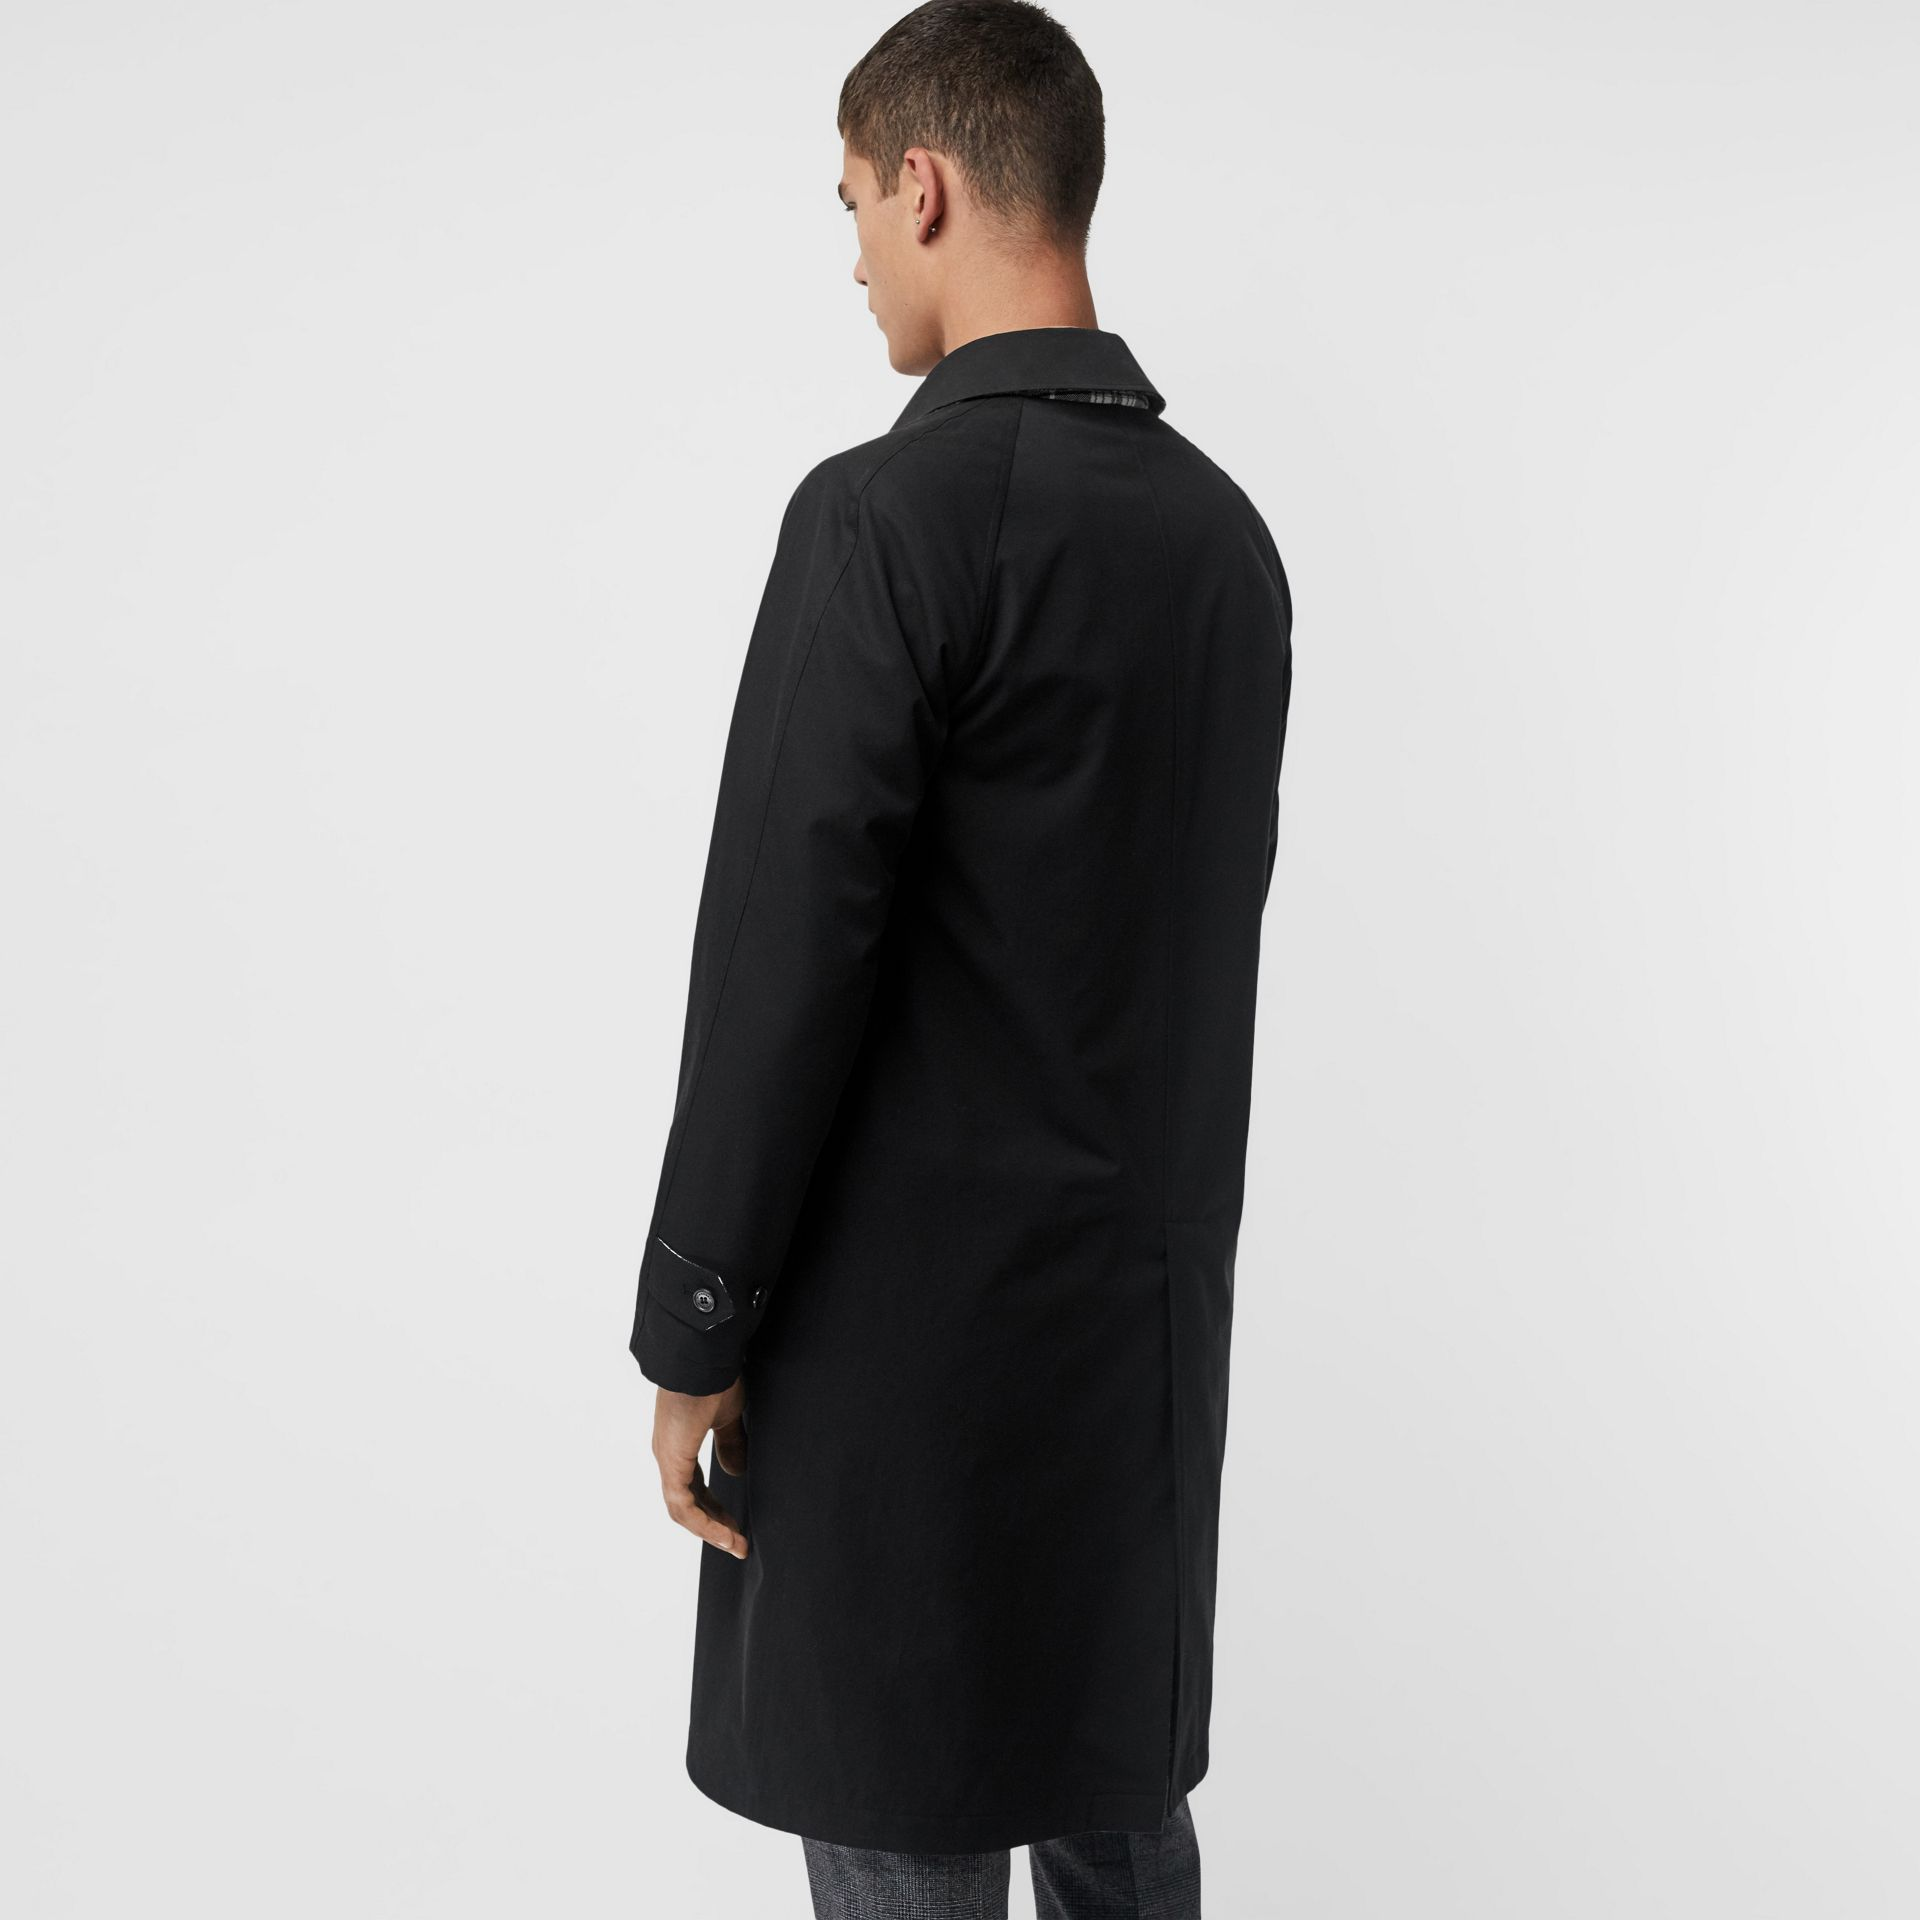 Reversible Wool Cashmere and Cotton Car Coat in Black - Men | Burberry Australia - gallery image 2